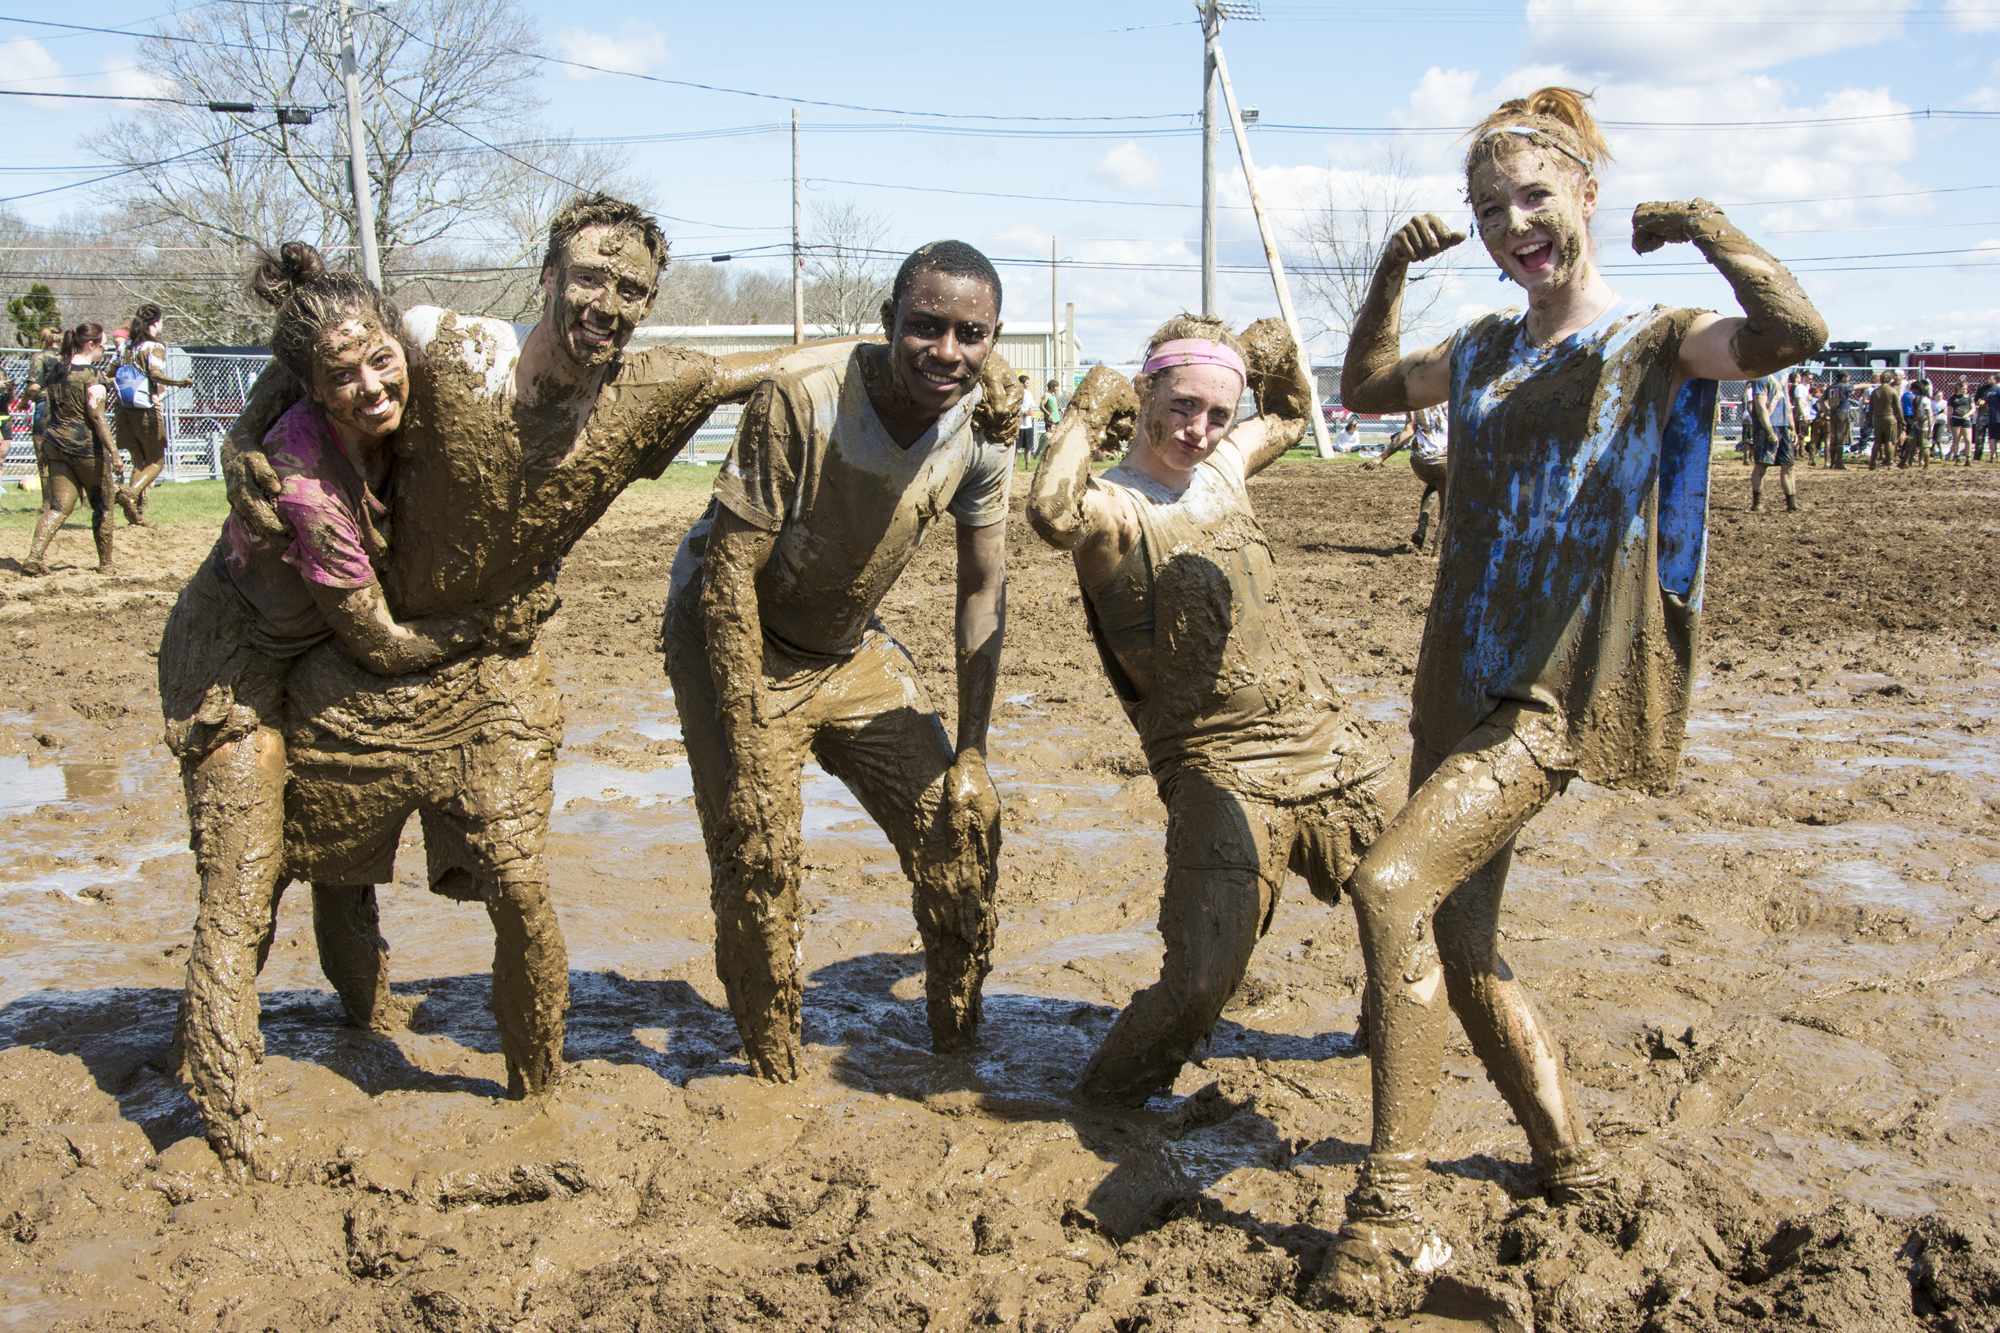 mud-caked oozeball players